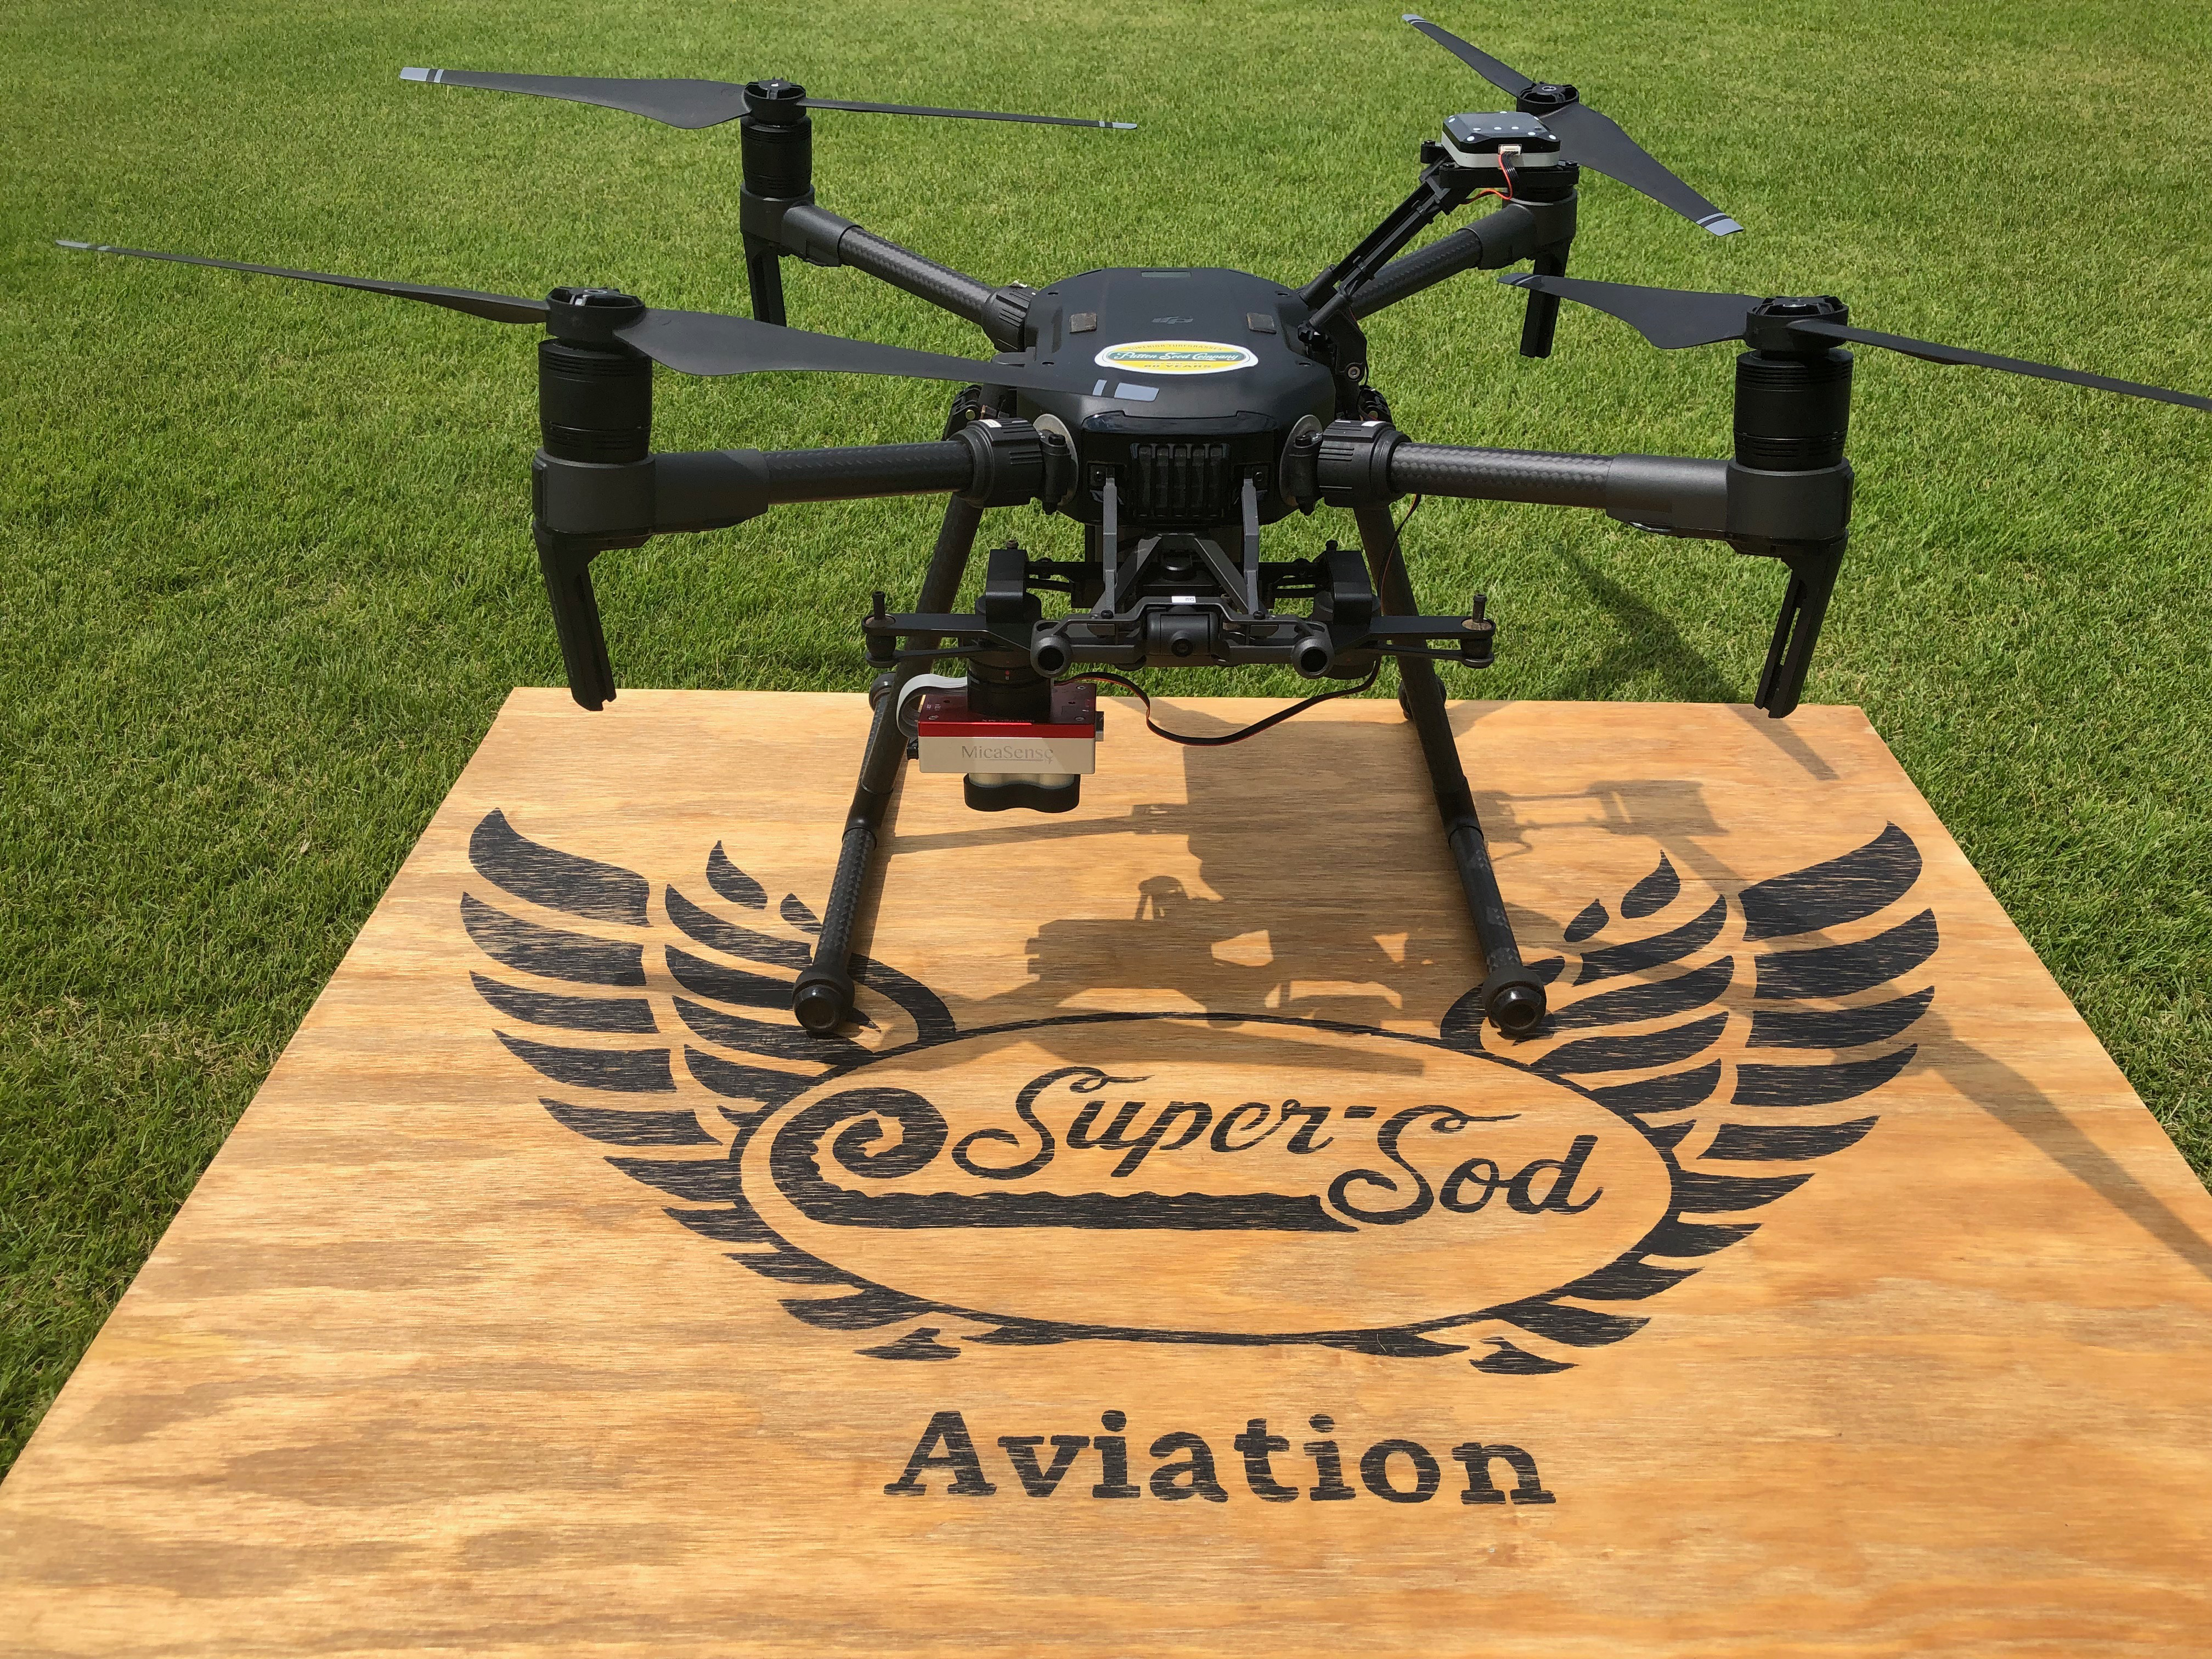 Growing Greener Grass with Drones - featured image